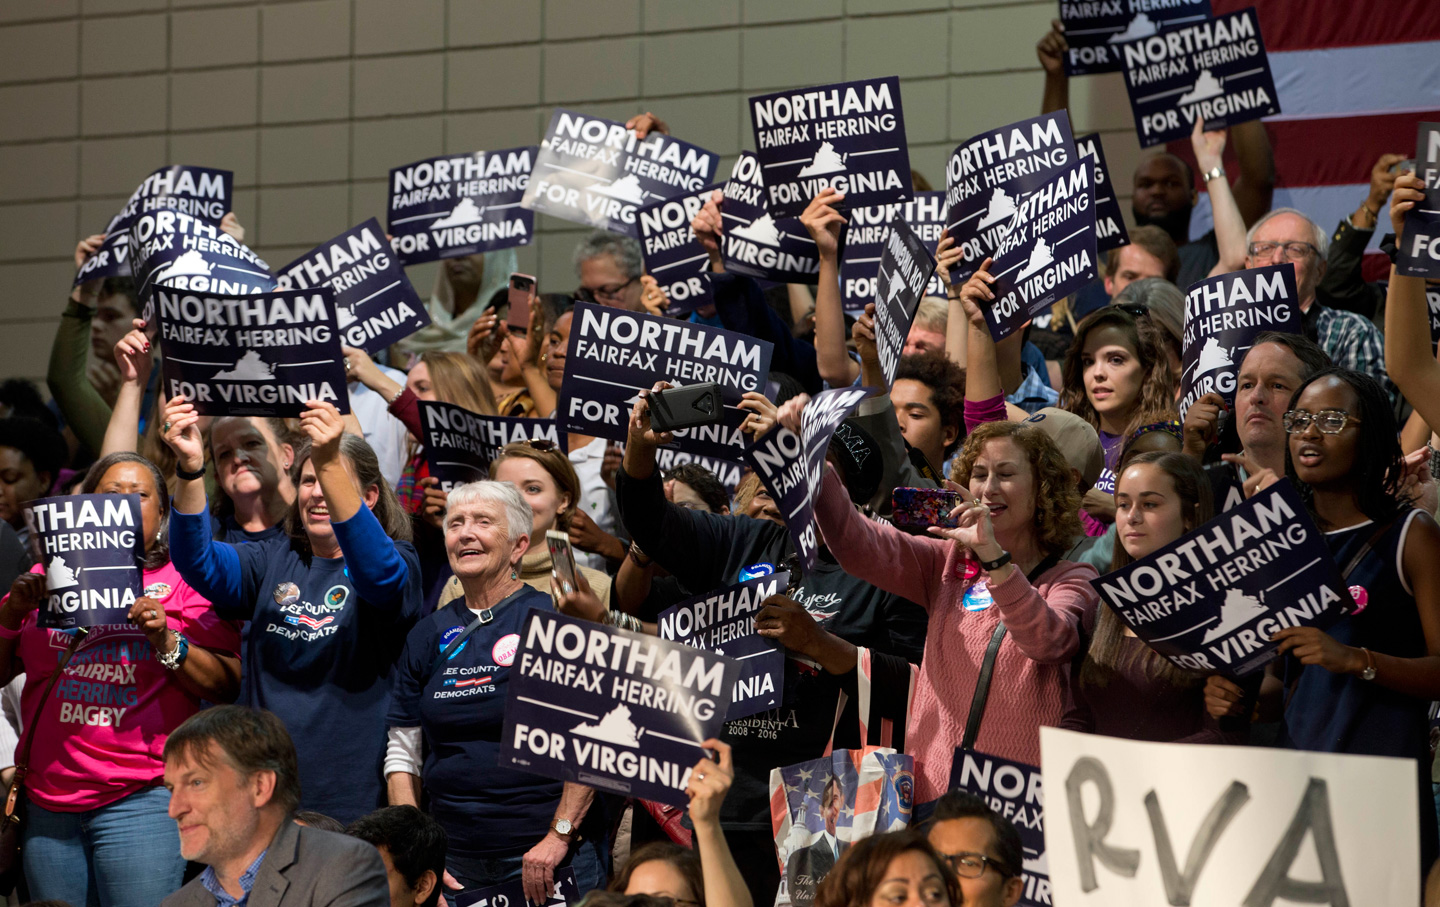 Ralph-Northam-supporters-Virginia-ap-img